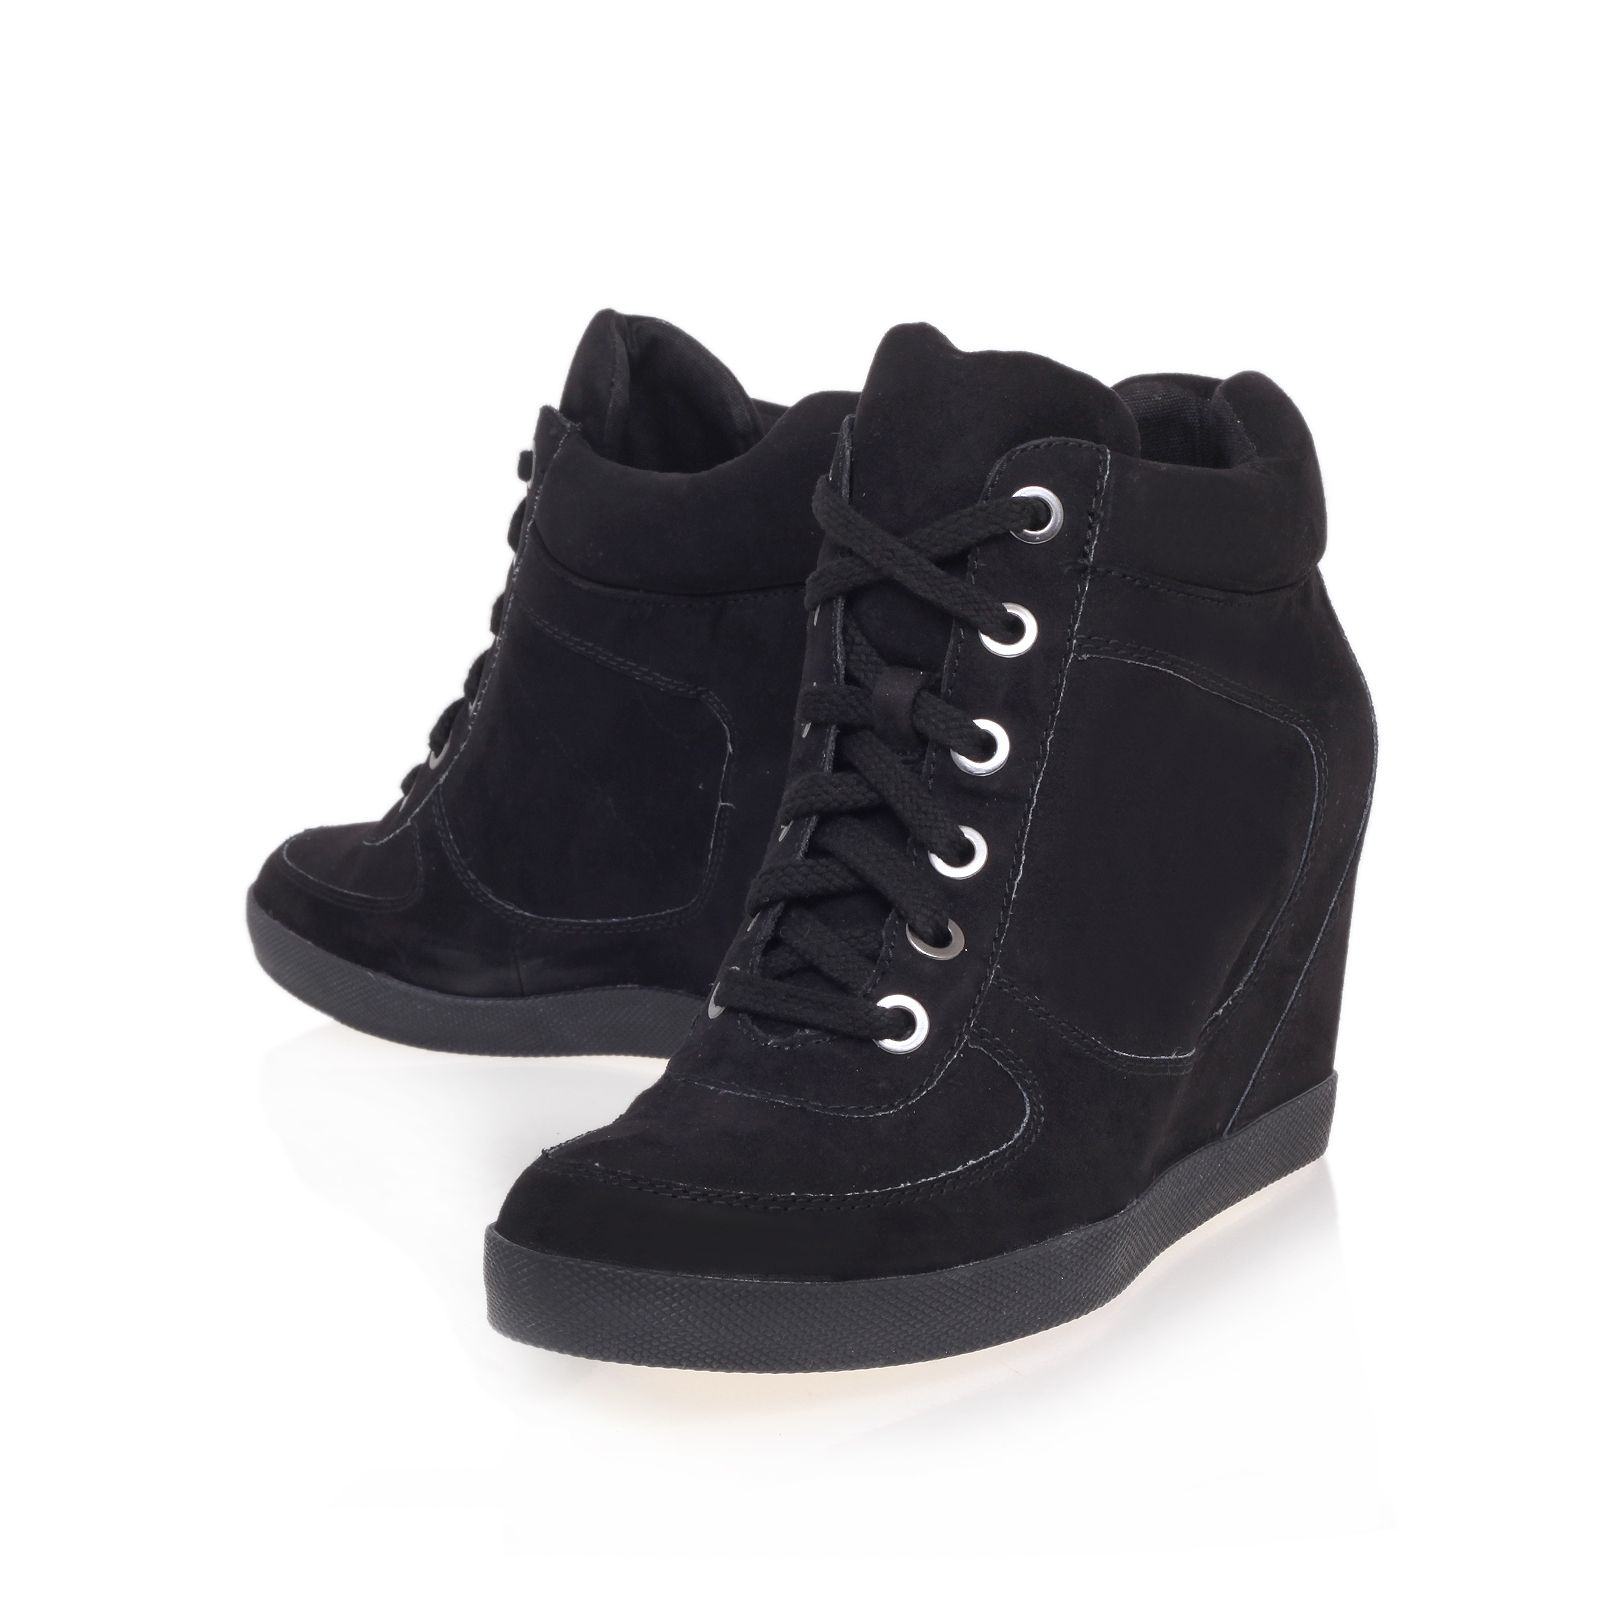 Lady lace up wedge trainer